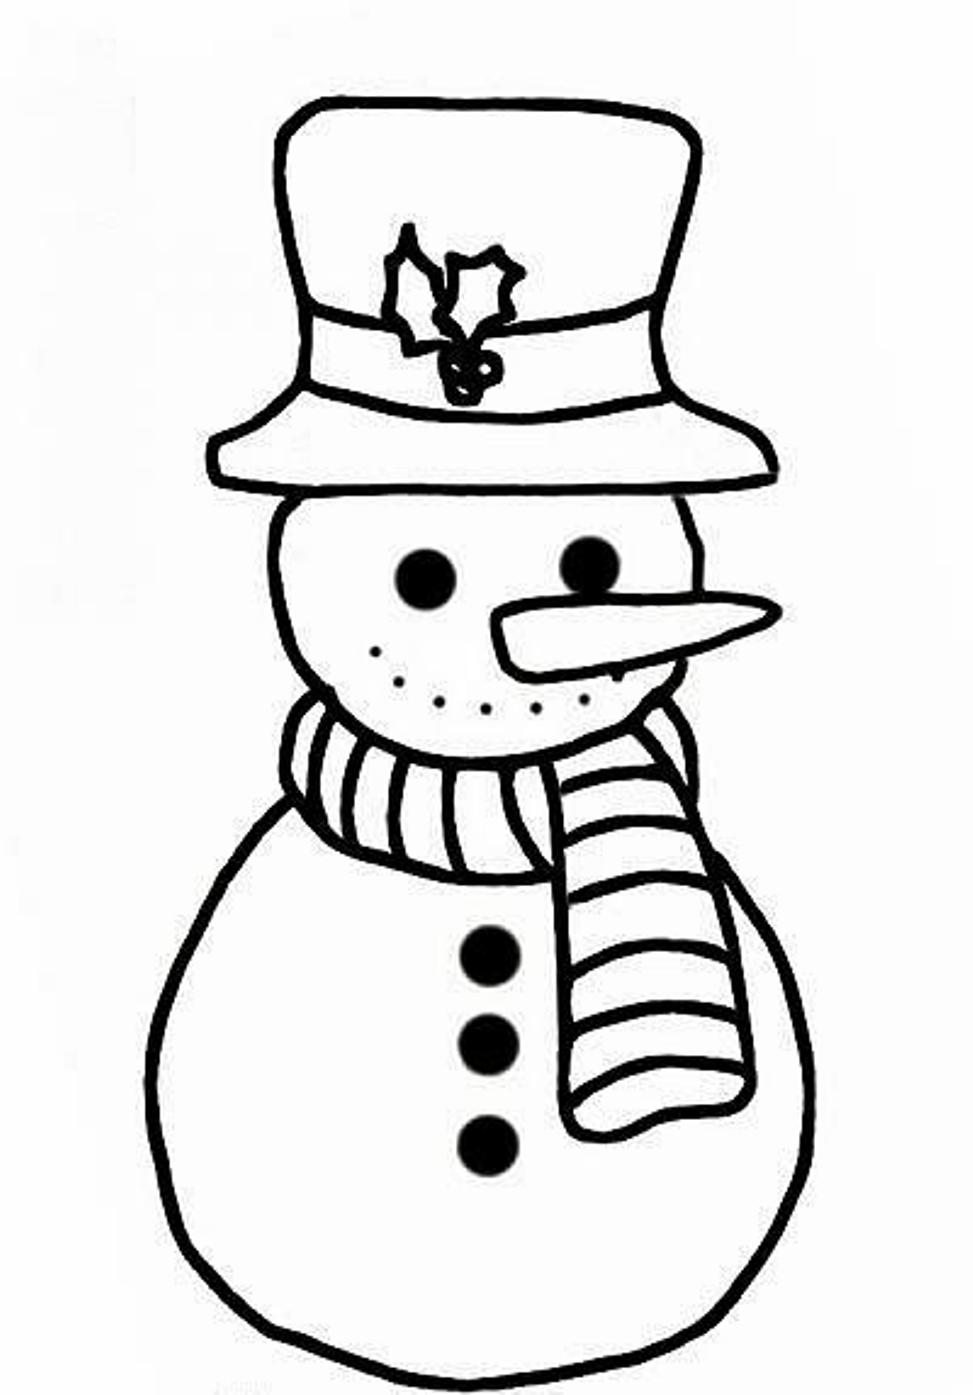 snowman coloring snowman coloring pages to download and print for free coloring snowman